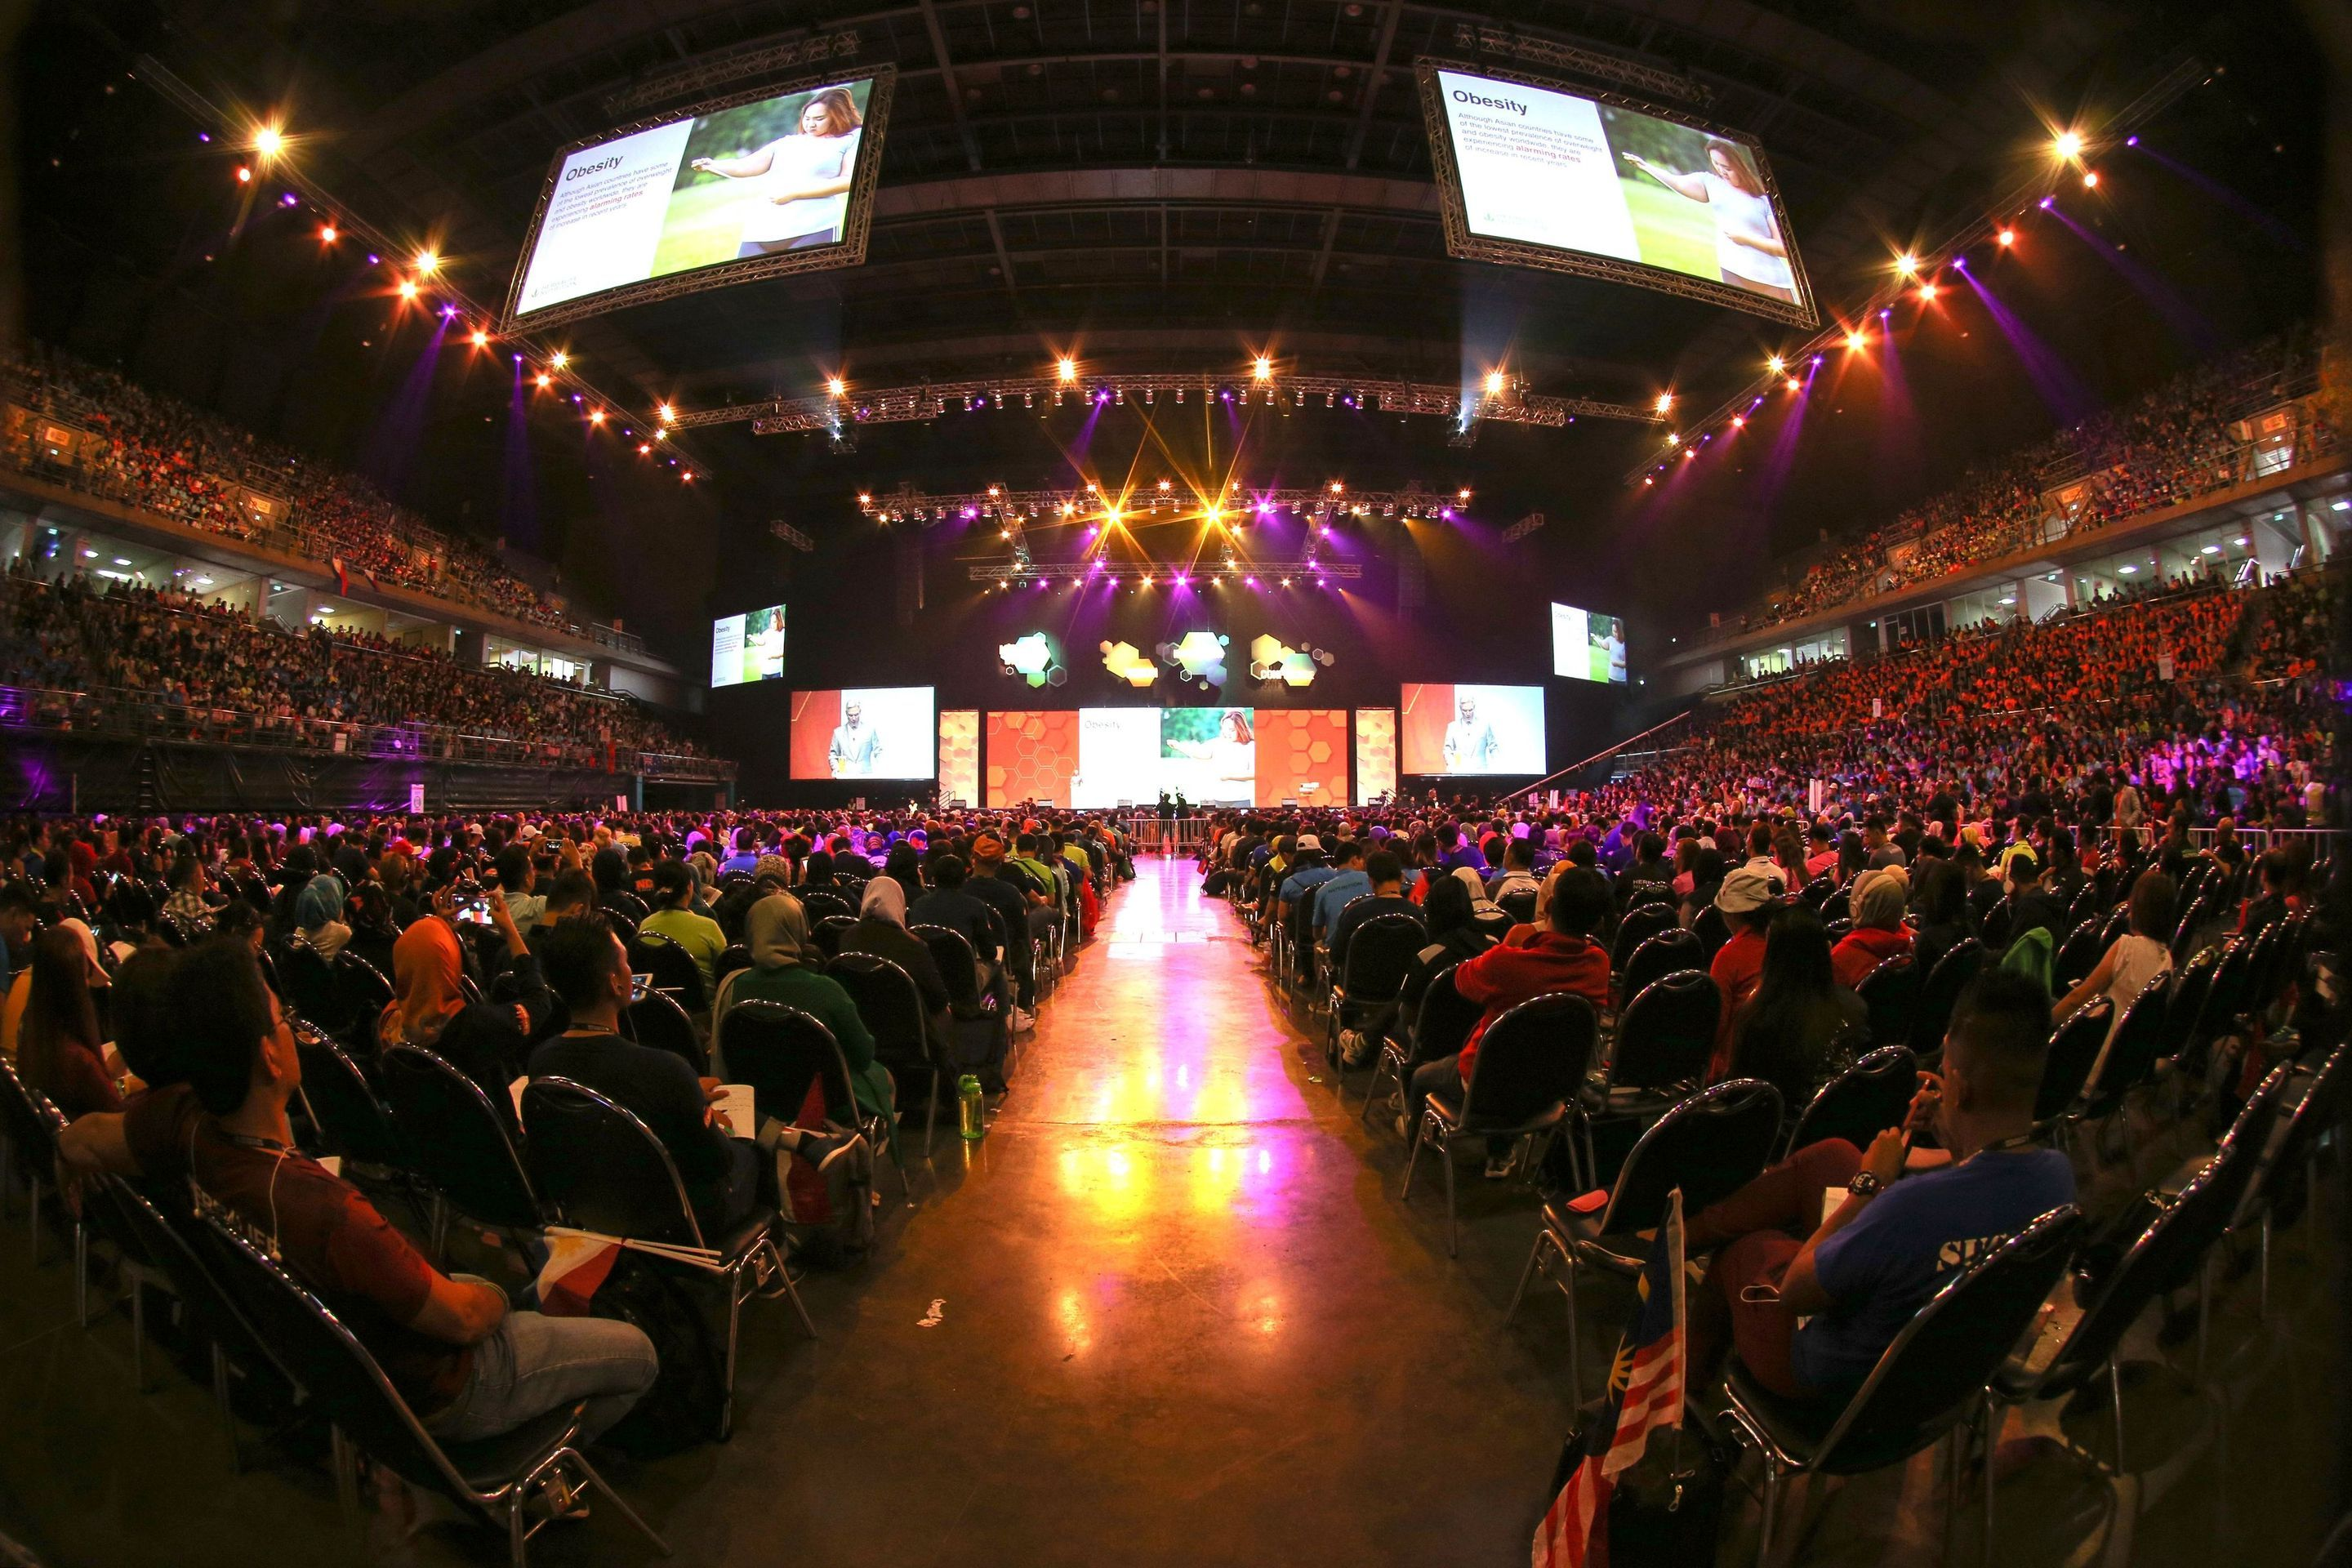 10,000 Herbalife members from across Southeast Asia gathered in Bangkok to learn how to inspire positive nutrition habits and active lifestyles within their local communities.